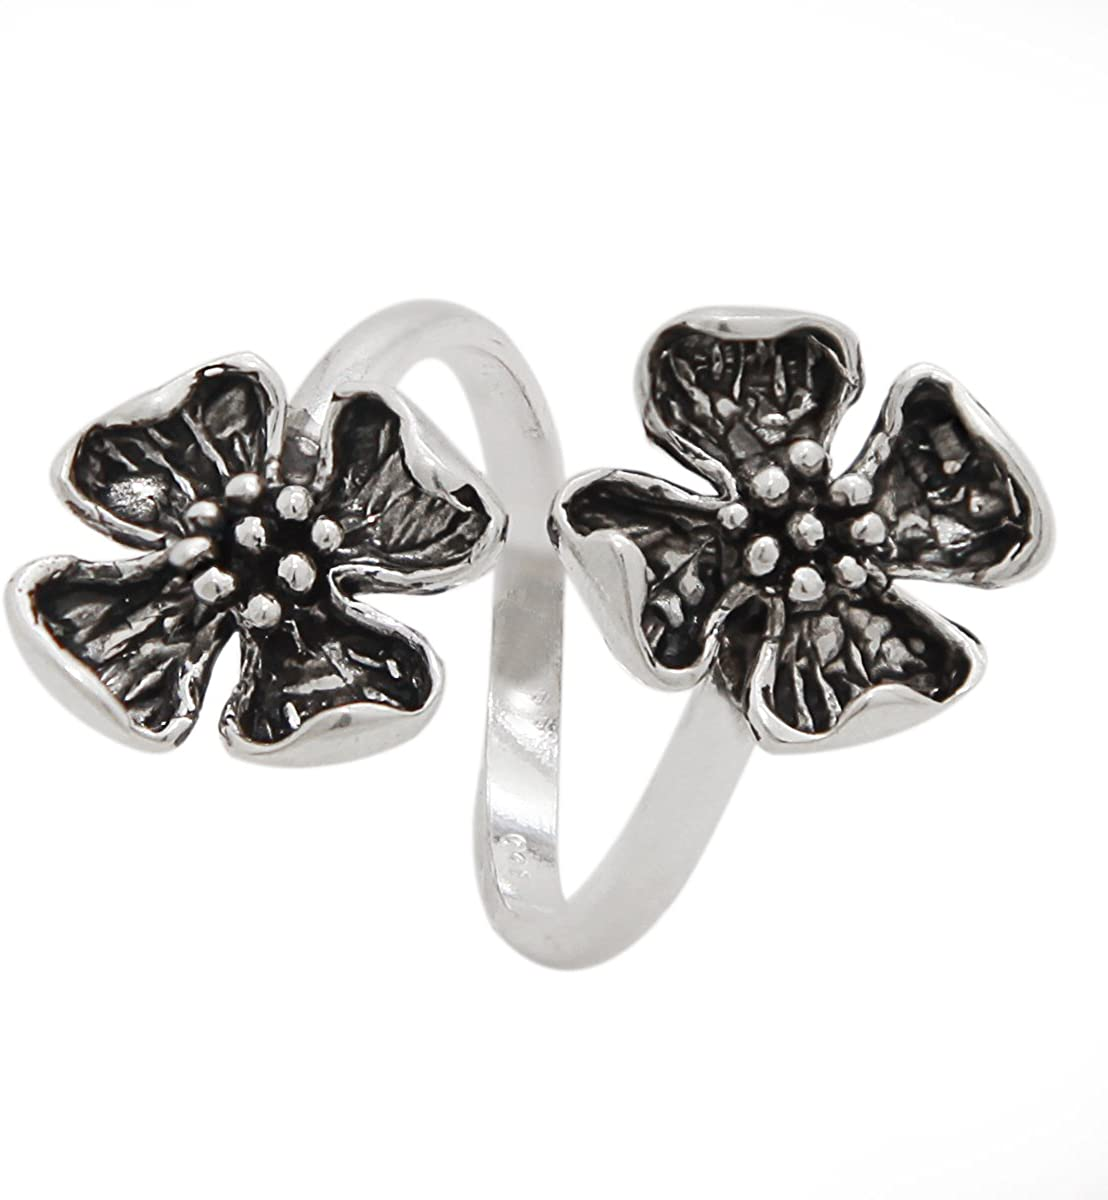 925 Sterling Silver Double Dogwood Flower Ring - Open Band (Sizes 5-12)